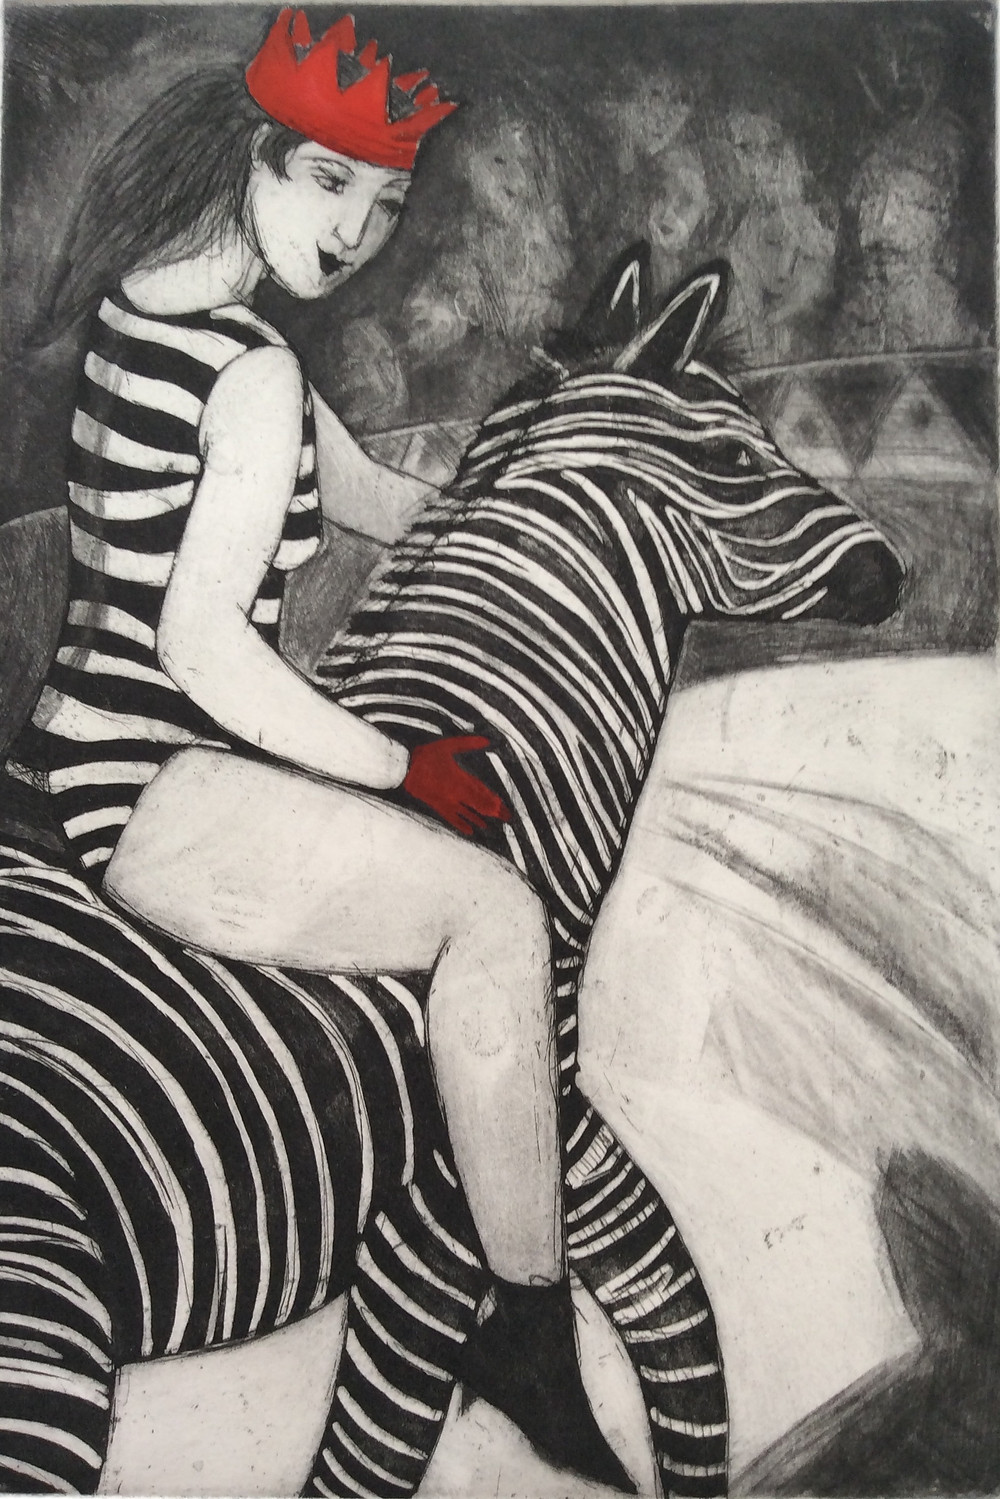 Circus performer riding a zebra, etching and drypoint by Sandra Millar